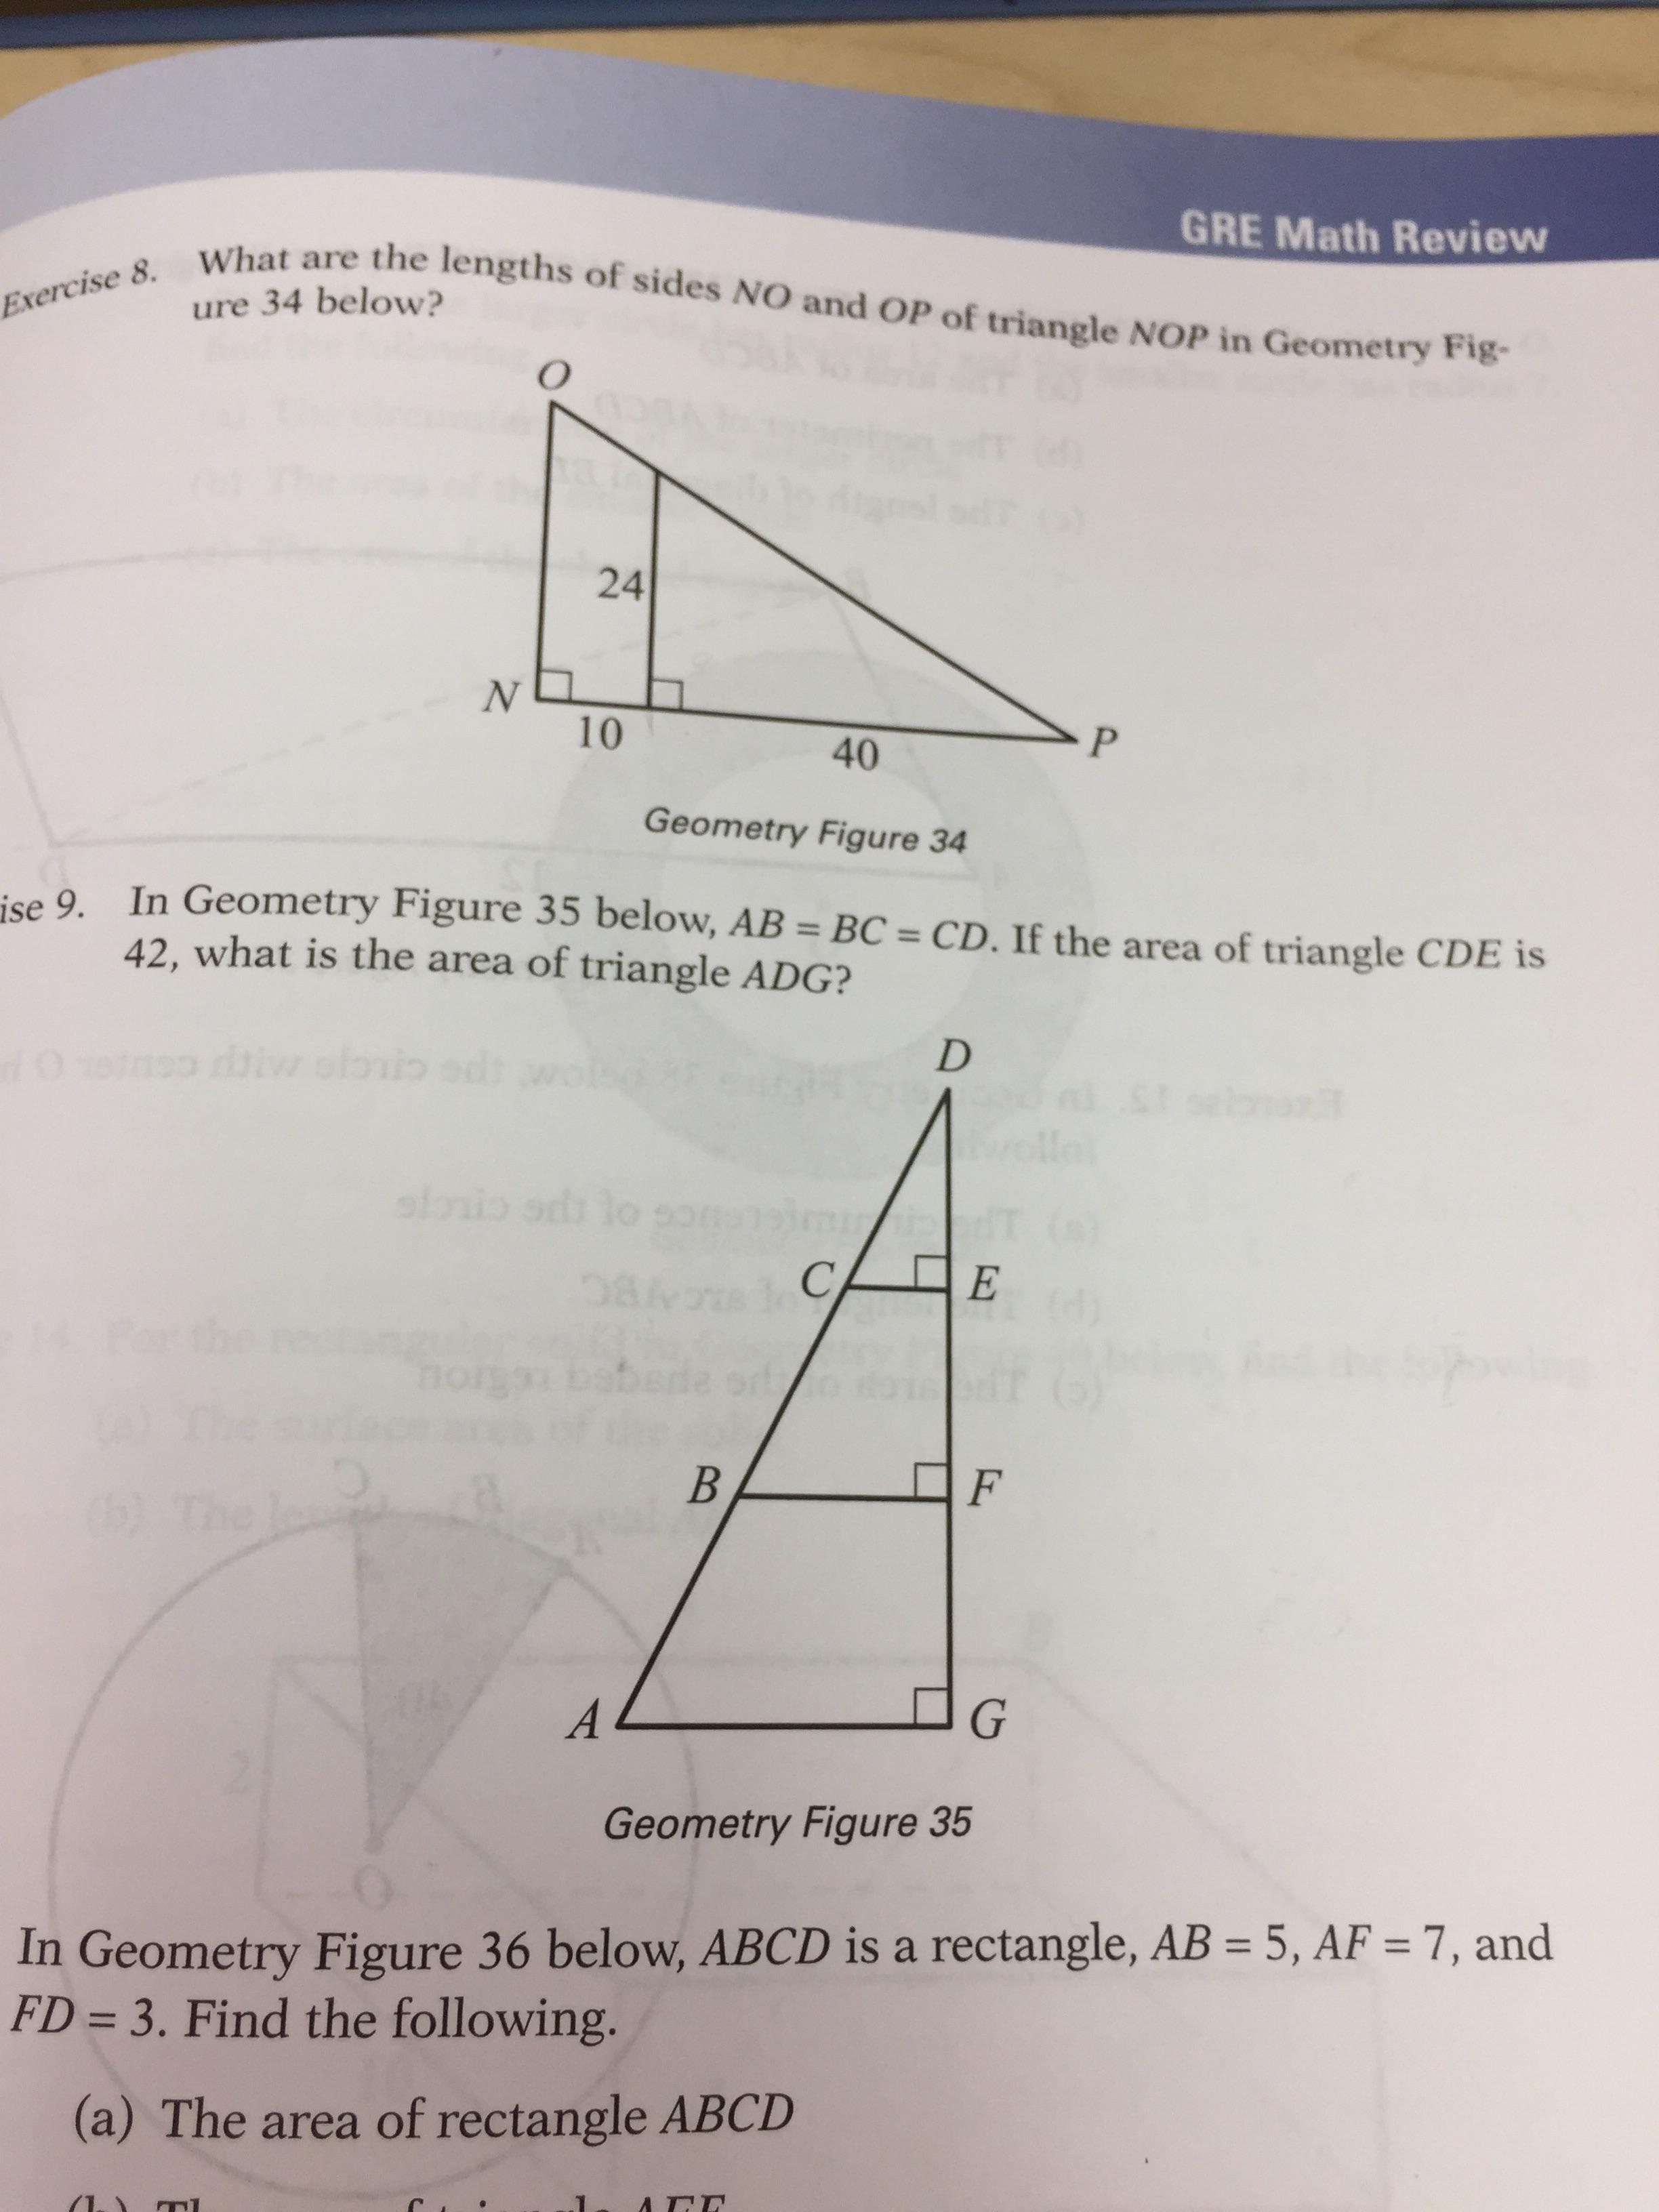 How On Earth Do You Find The Area Of A Triangle Given Only